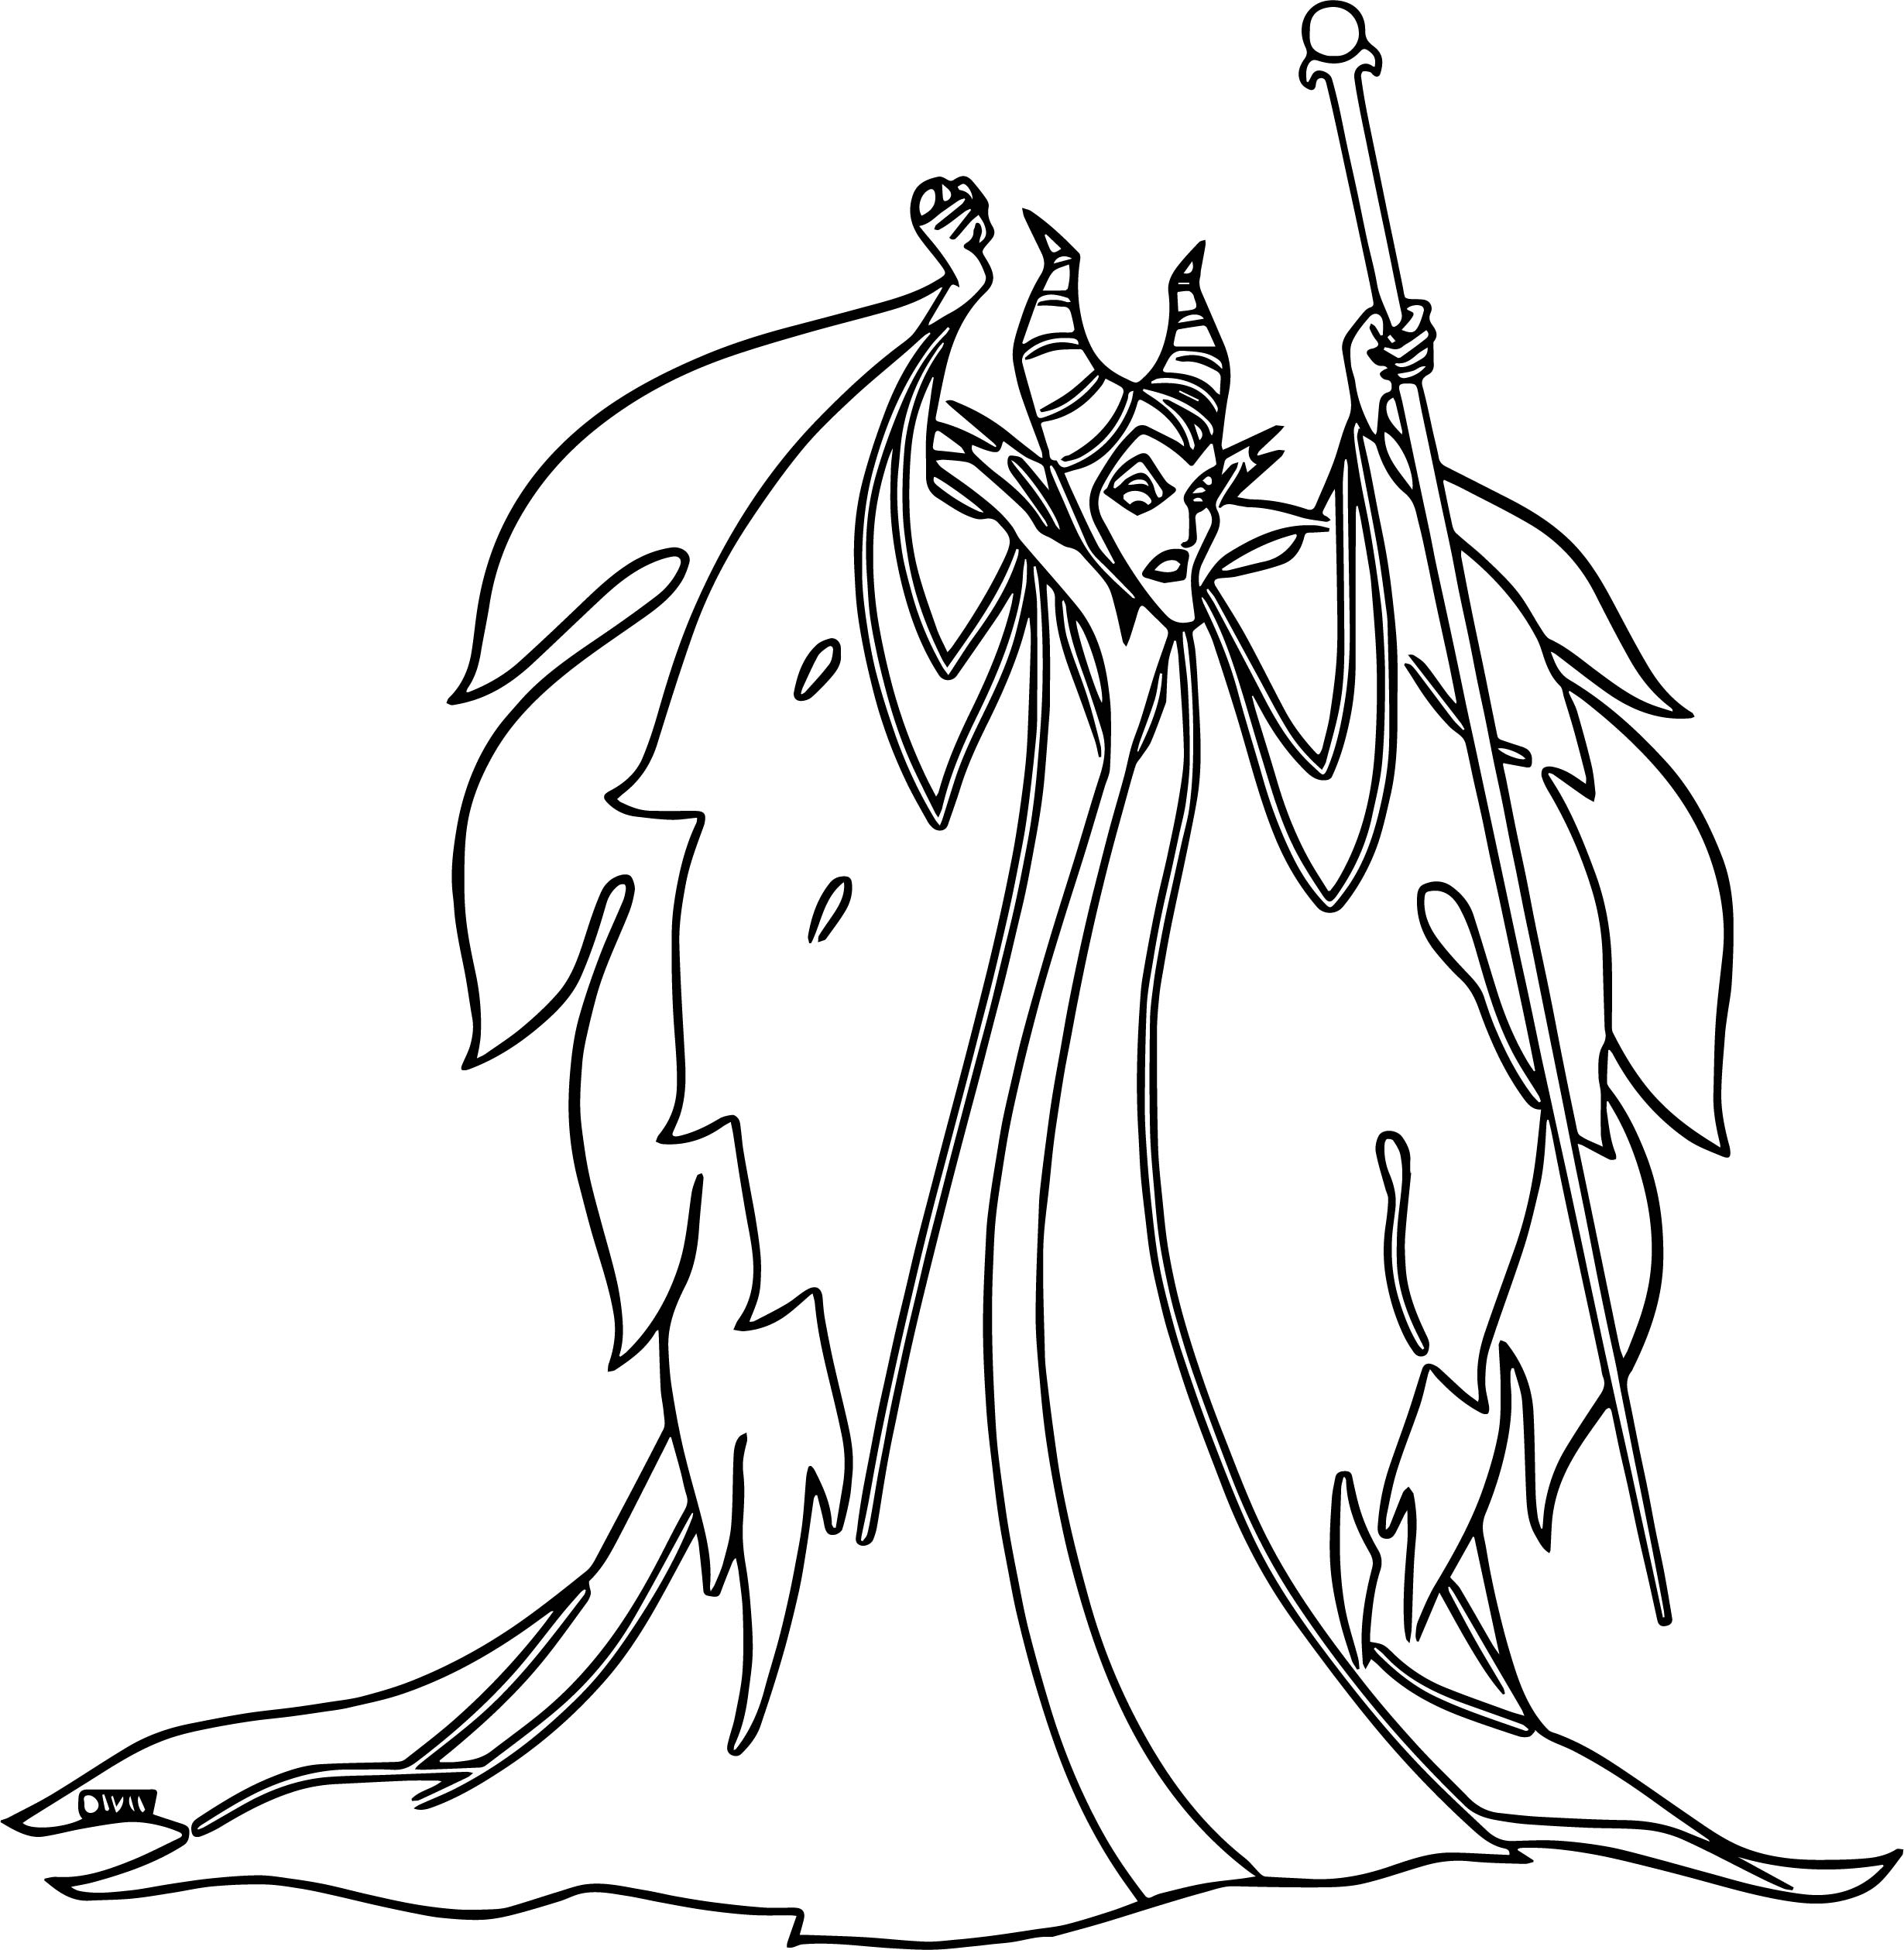 Maleficent Angry Coloring Page | Wecoloringpage